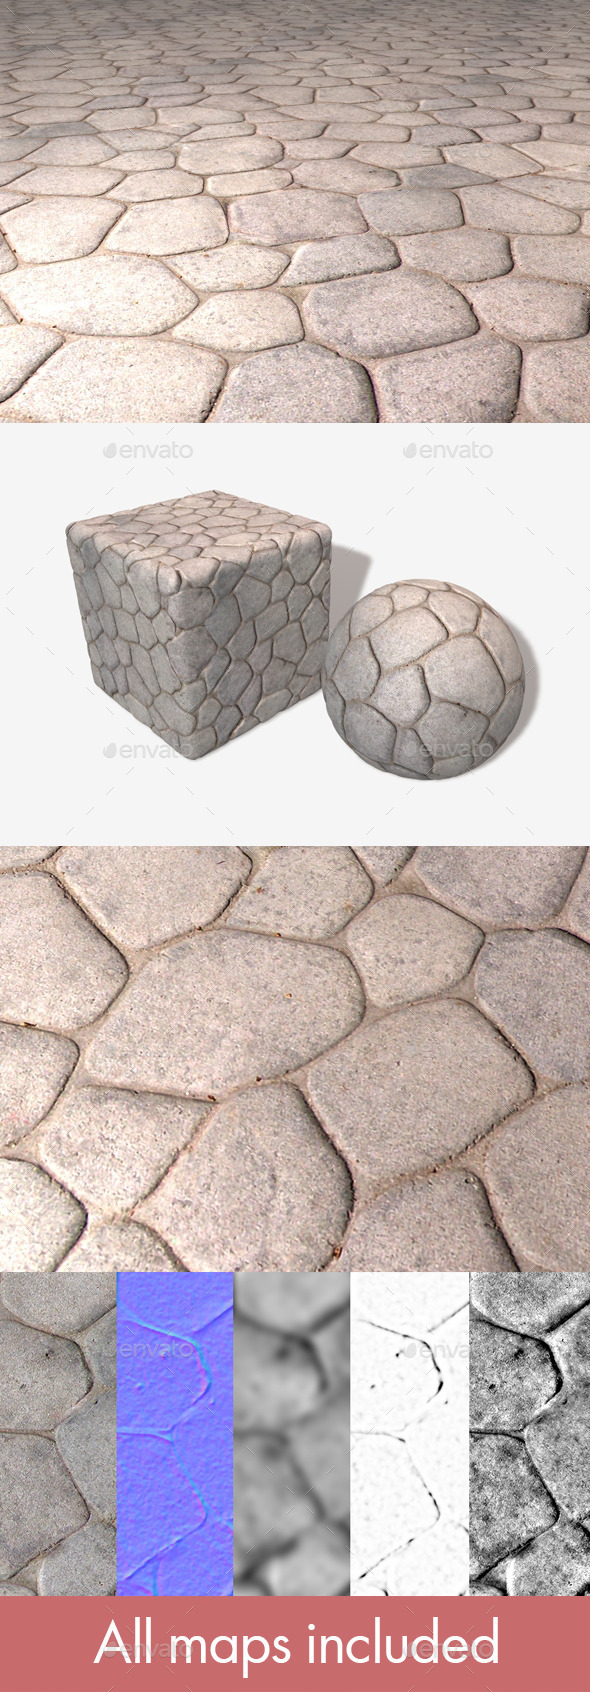 Smooth Stone Floor Seamless Texture - 3DOcean Item for Sale